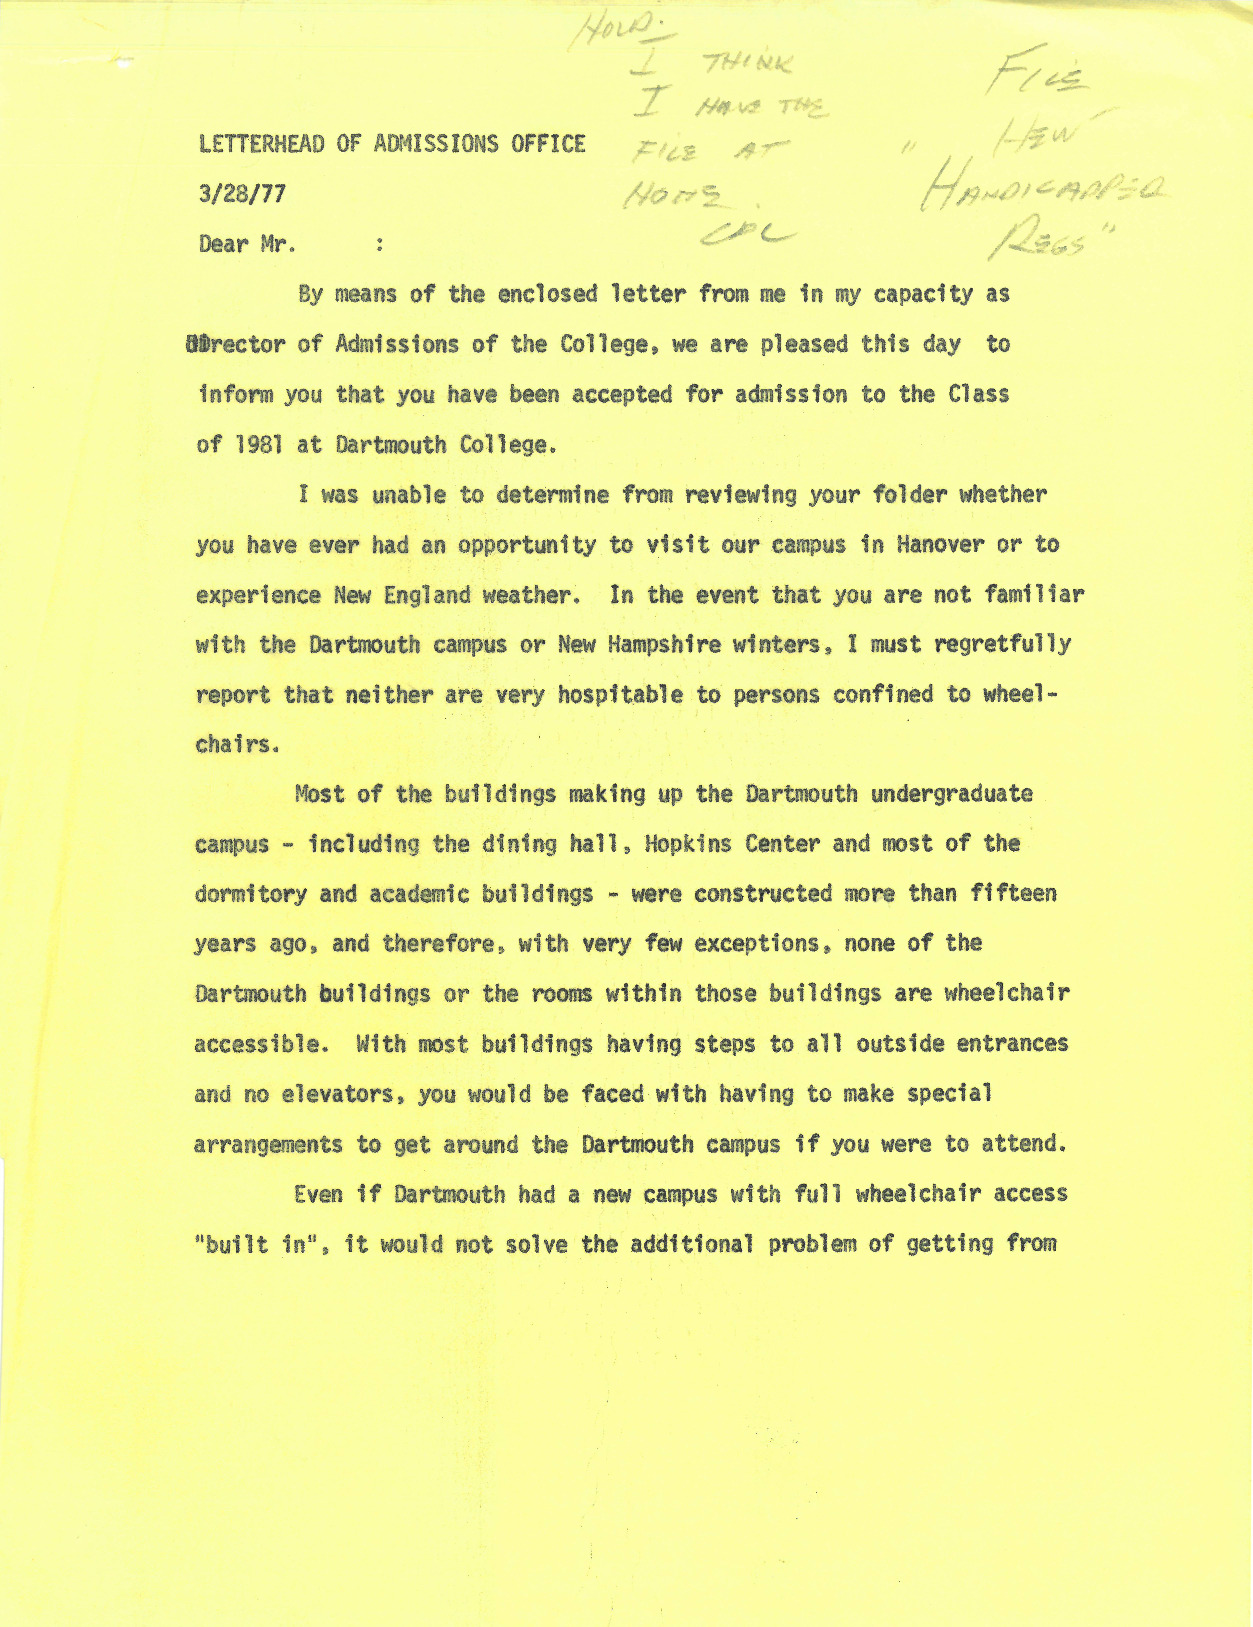 """A letter from the Director of Admissions to an admitted student to the Class of 1981. The director is open about the inaccessibility of Dartmouth's campus and the difficulty wheelchair users have had attending Dartmouth in the past, but encourages the student to contact Dave Eckels for perspective on the disabled experience at Dartmouth. The letter's recipient is likely the same student who decided to attend Northwestern, thereby giving the College """"at least a one year reprieve."""""""